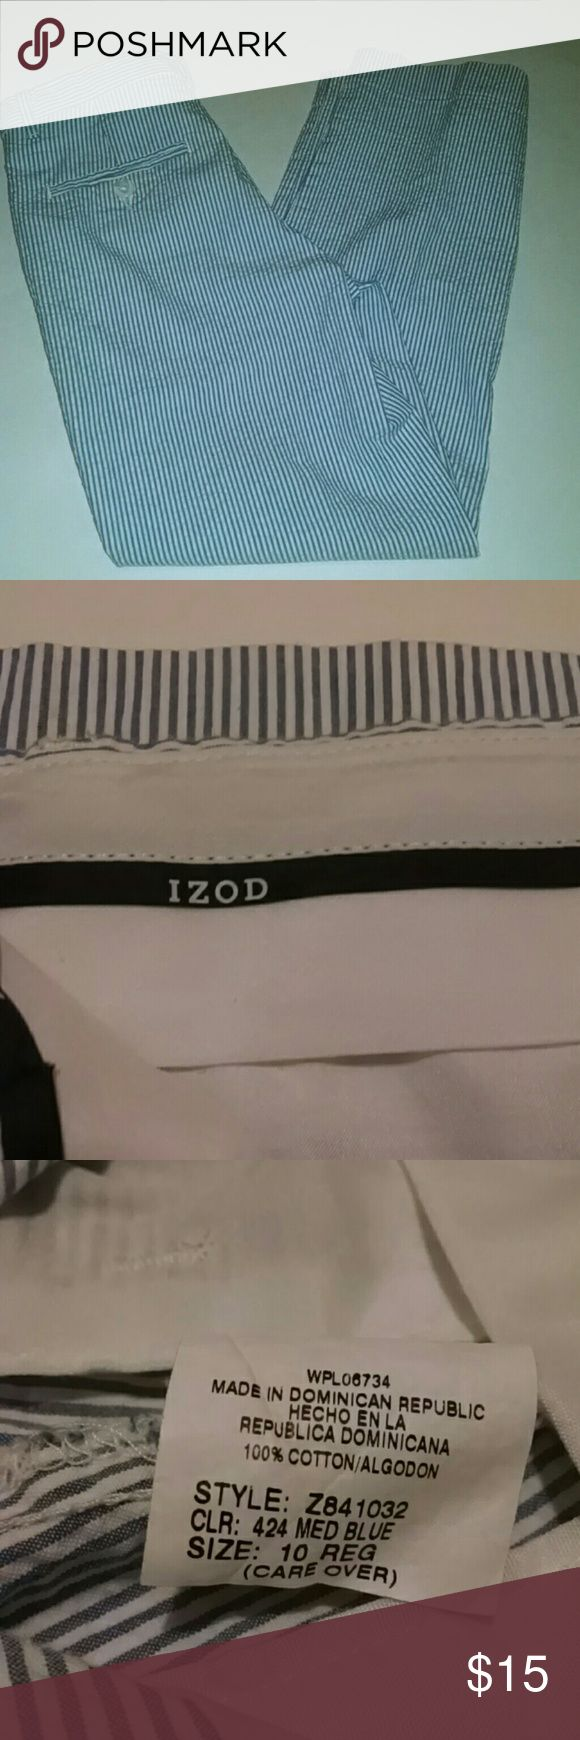 Izod Seersucker Pants ADORABLE! Carolina blue pinstripe for your little preppy gent. 12.5 waist 23 inch inseam... Approximate measure. Side slits pockets gently used condition Izod Bottoms